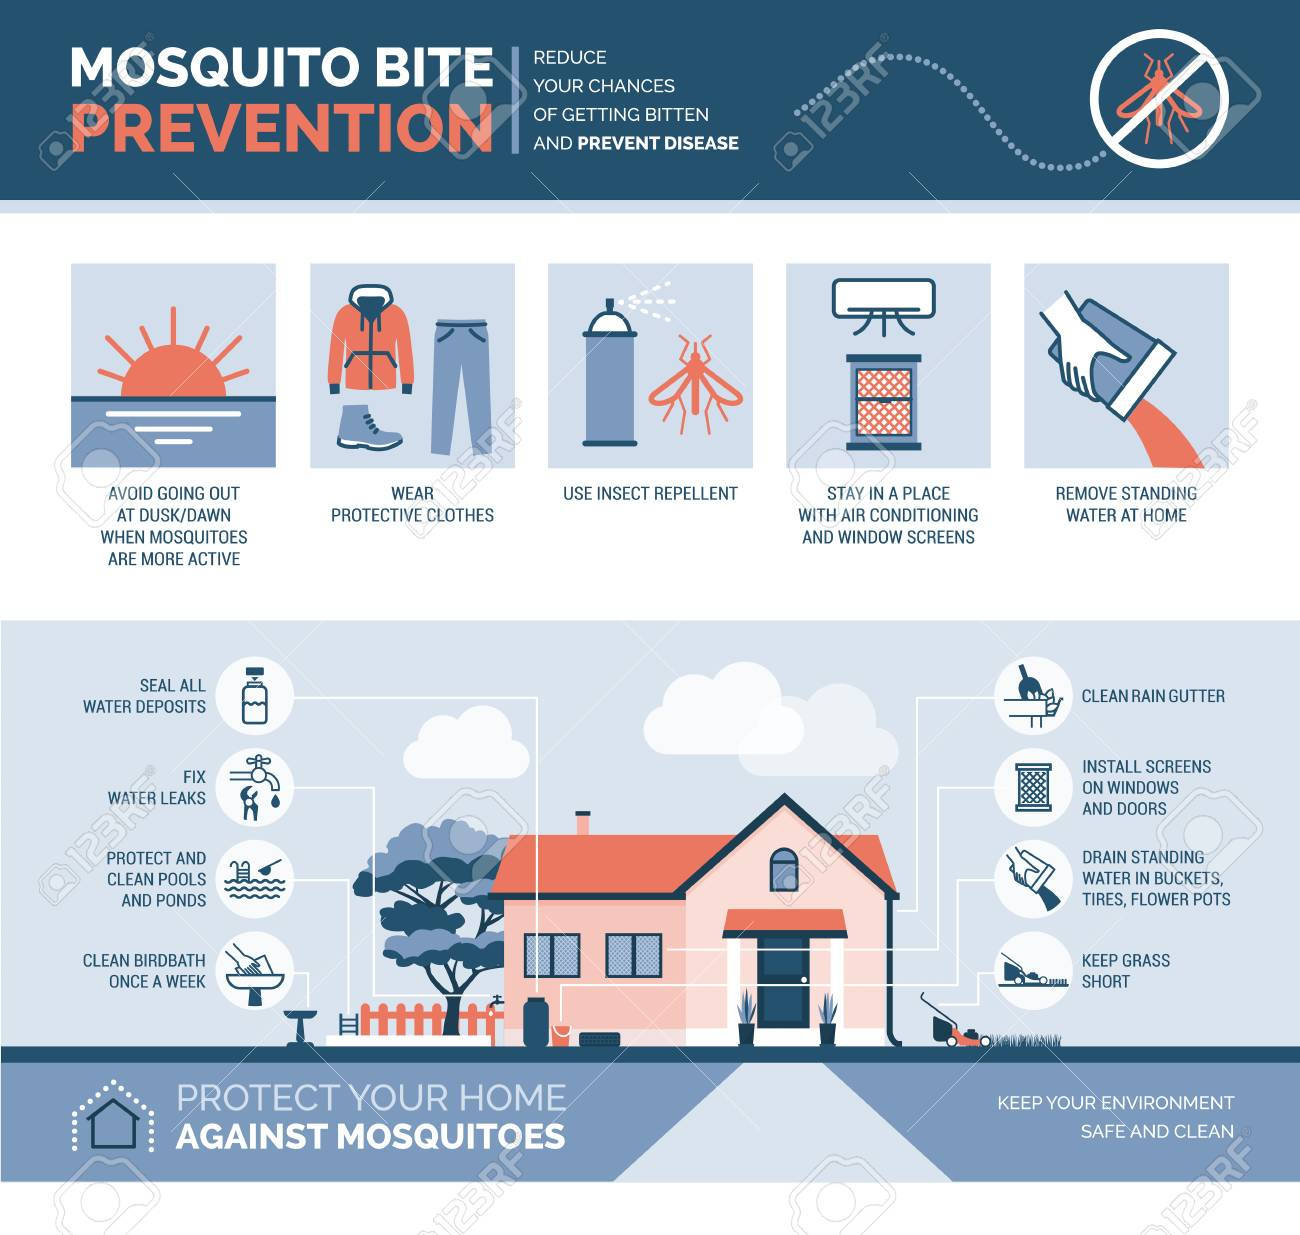 Mosquito bite prevention infographic: how to avoid mosquito bites and how to keep your house safe - 110466138